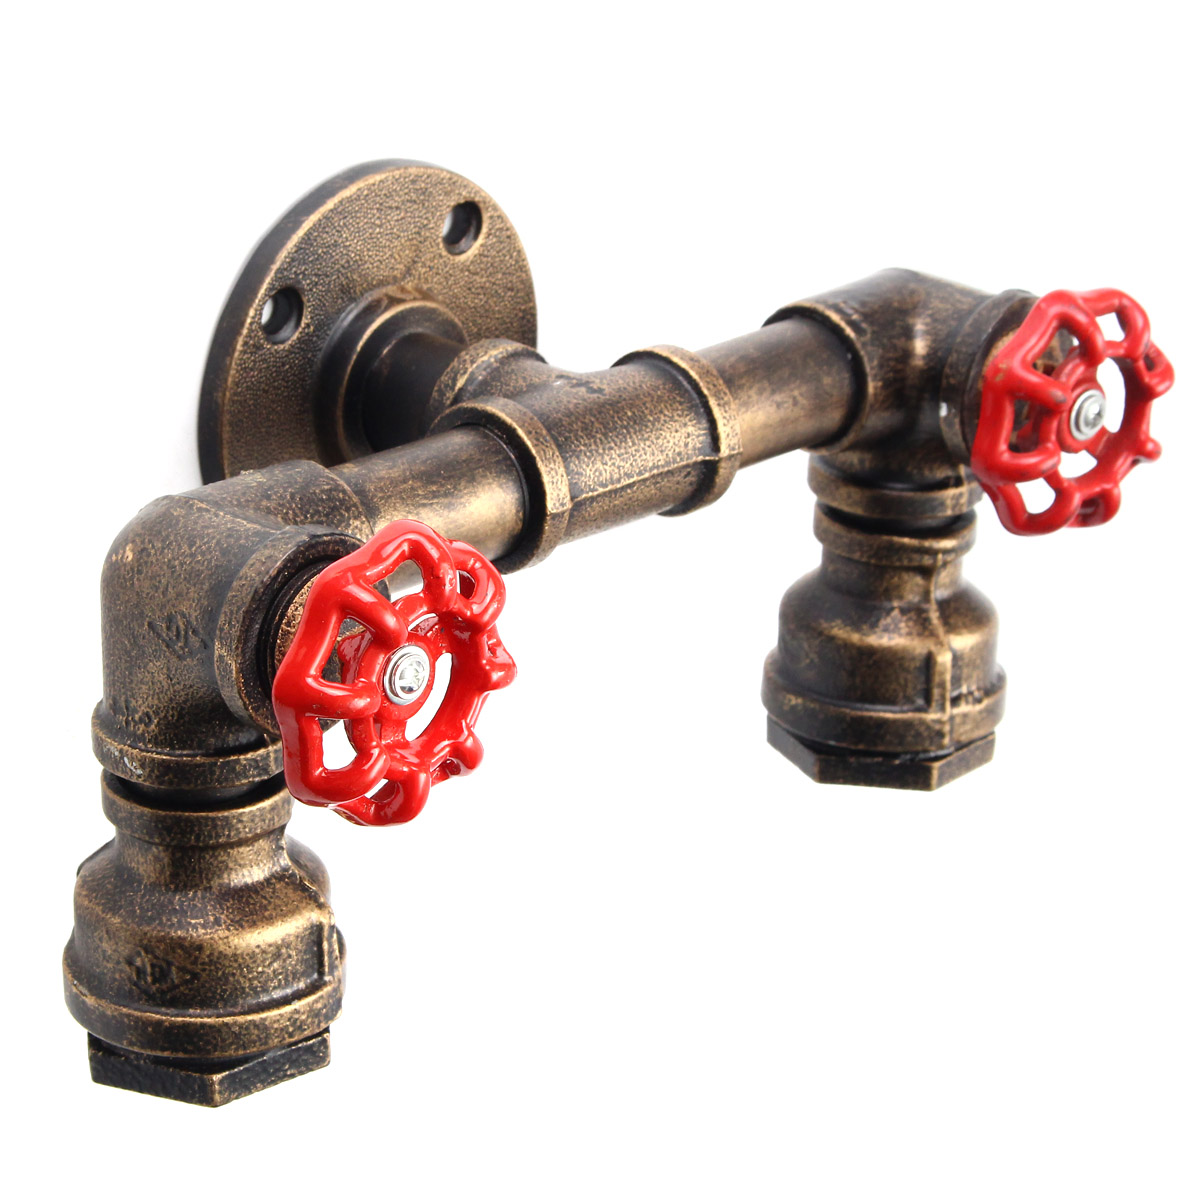 Iwhd Water Pipe Retro Vintage Ceiling Light Fixtures: Retro Industrial Steampunk Iron Water Pipe Shape Wall Lamp